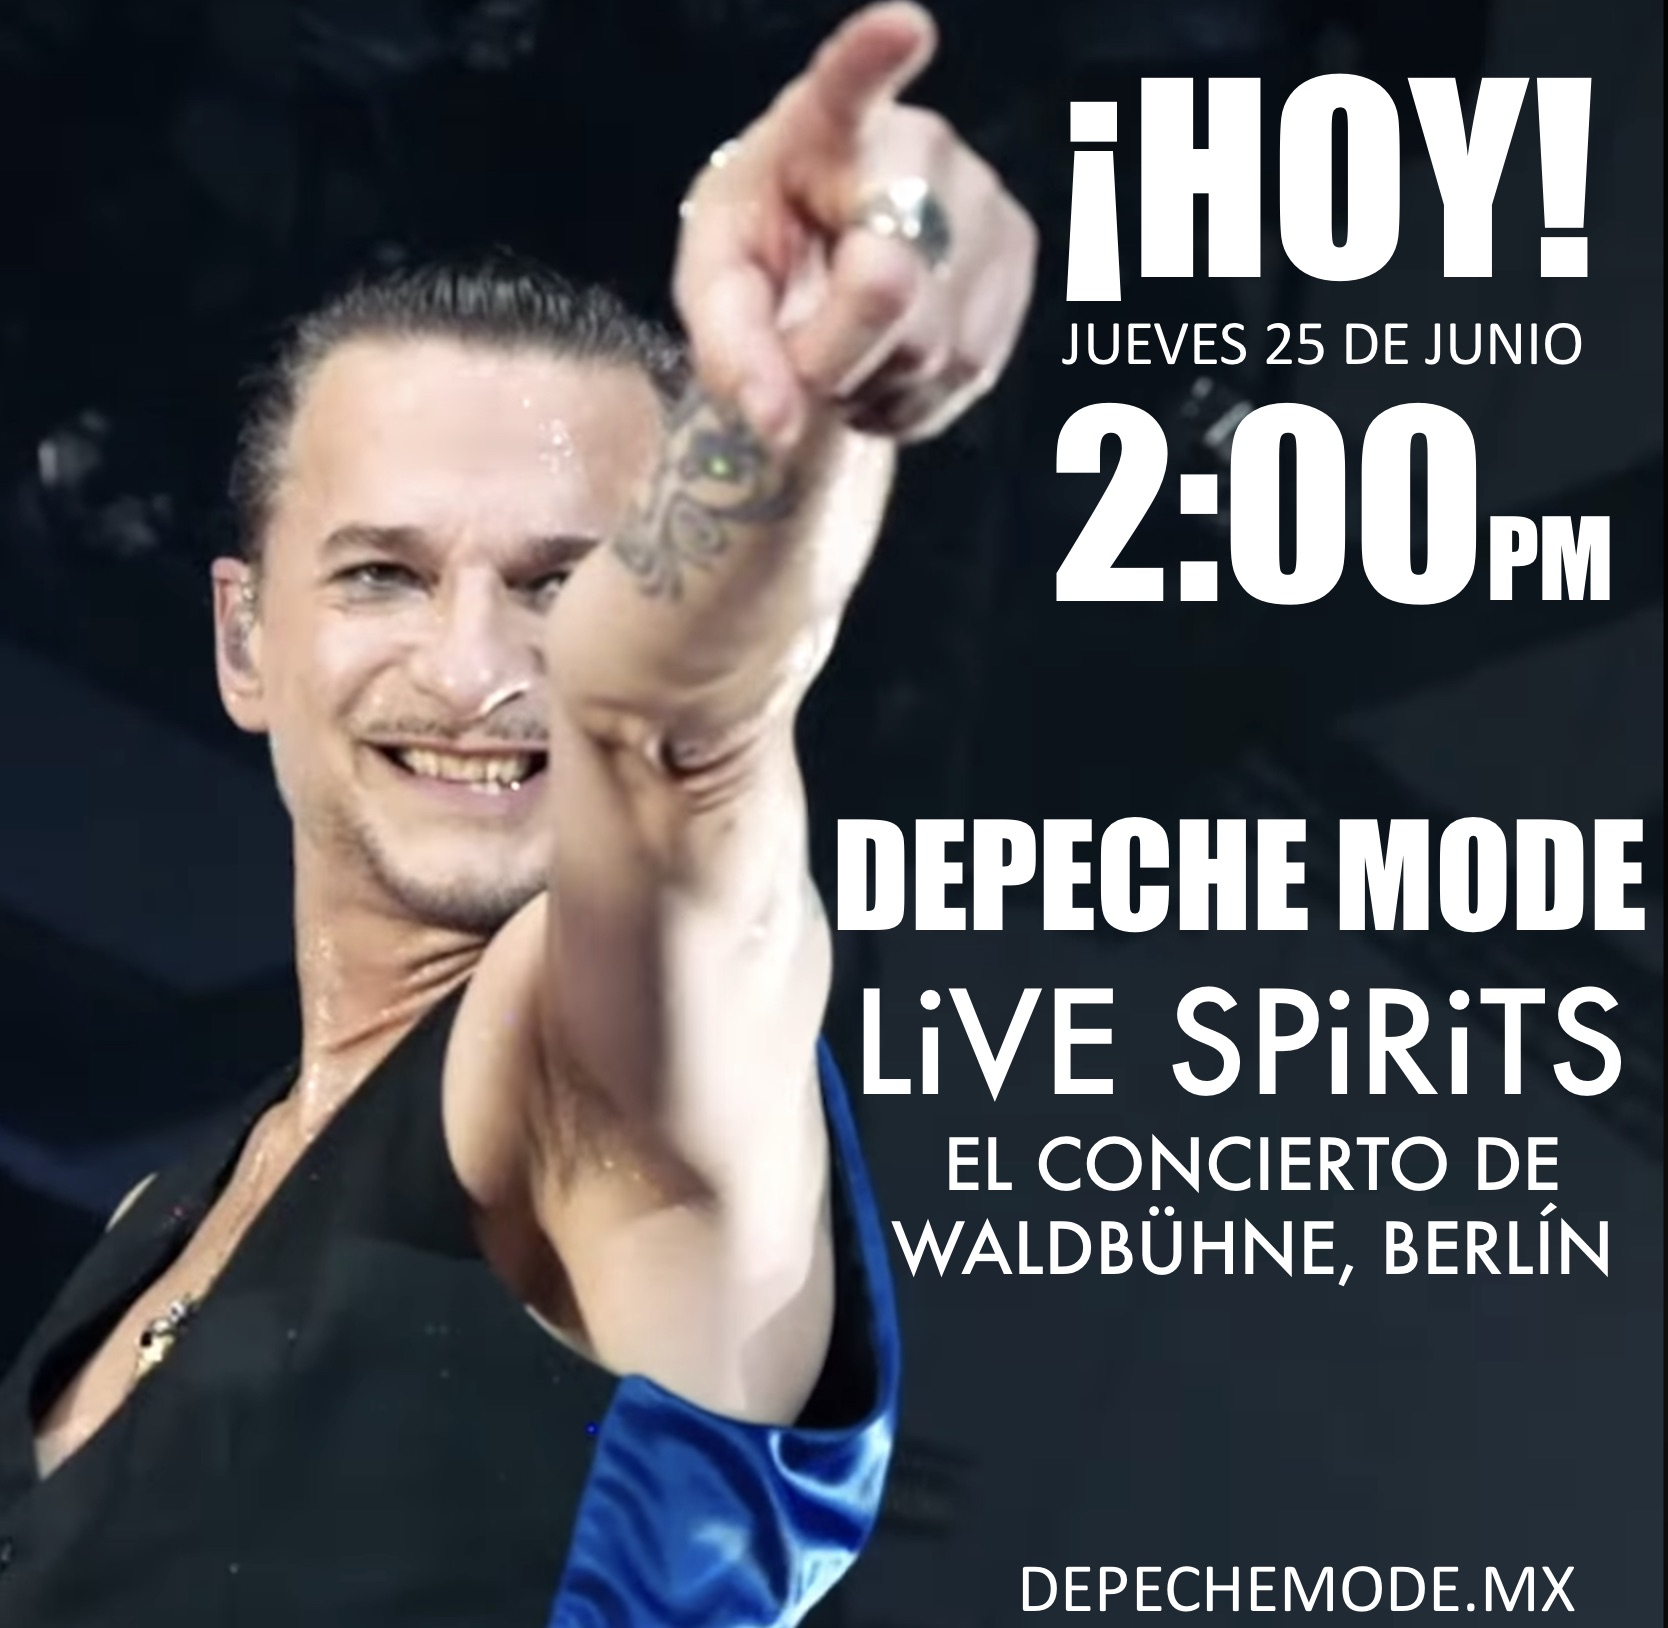 DEPECHE MODE LIVE 25 JUNIO YOUTUBE